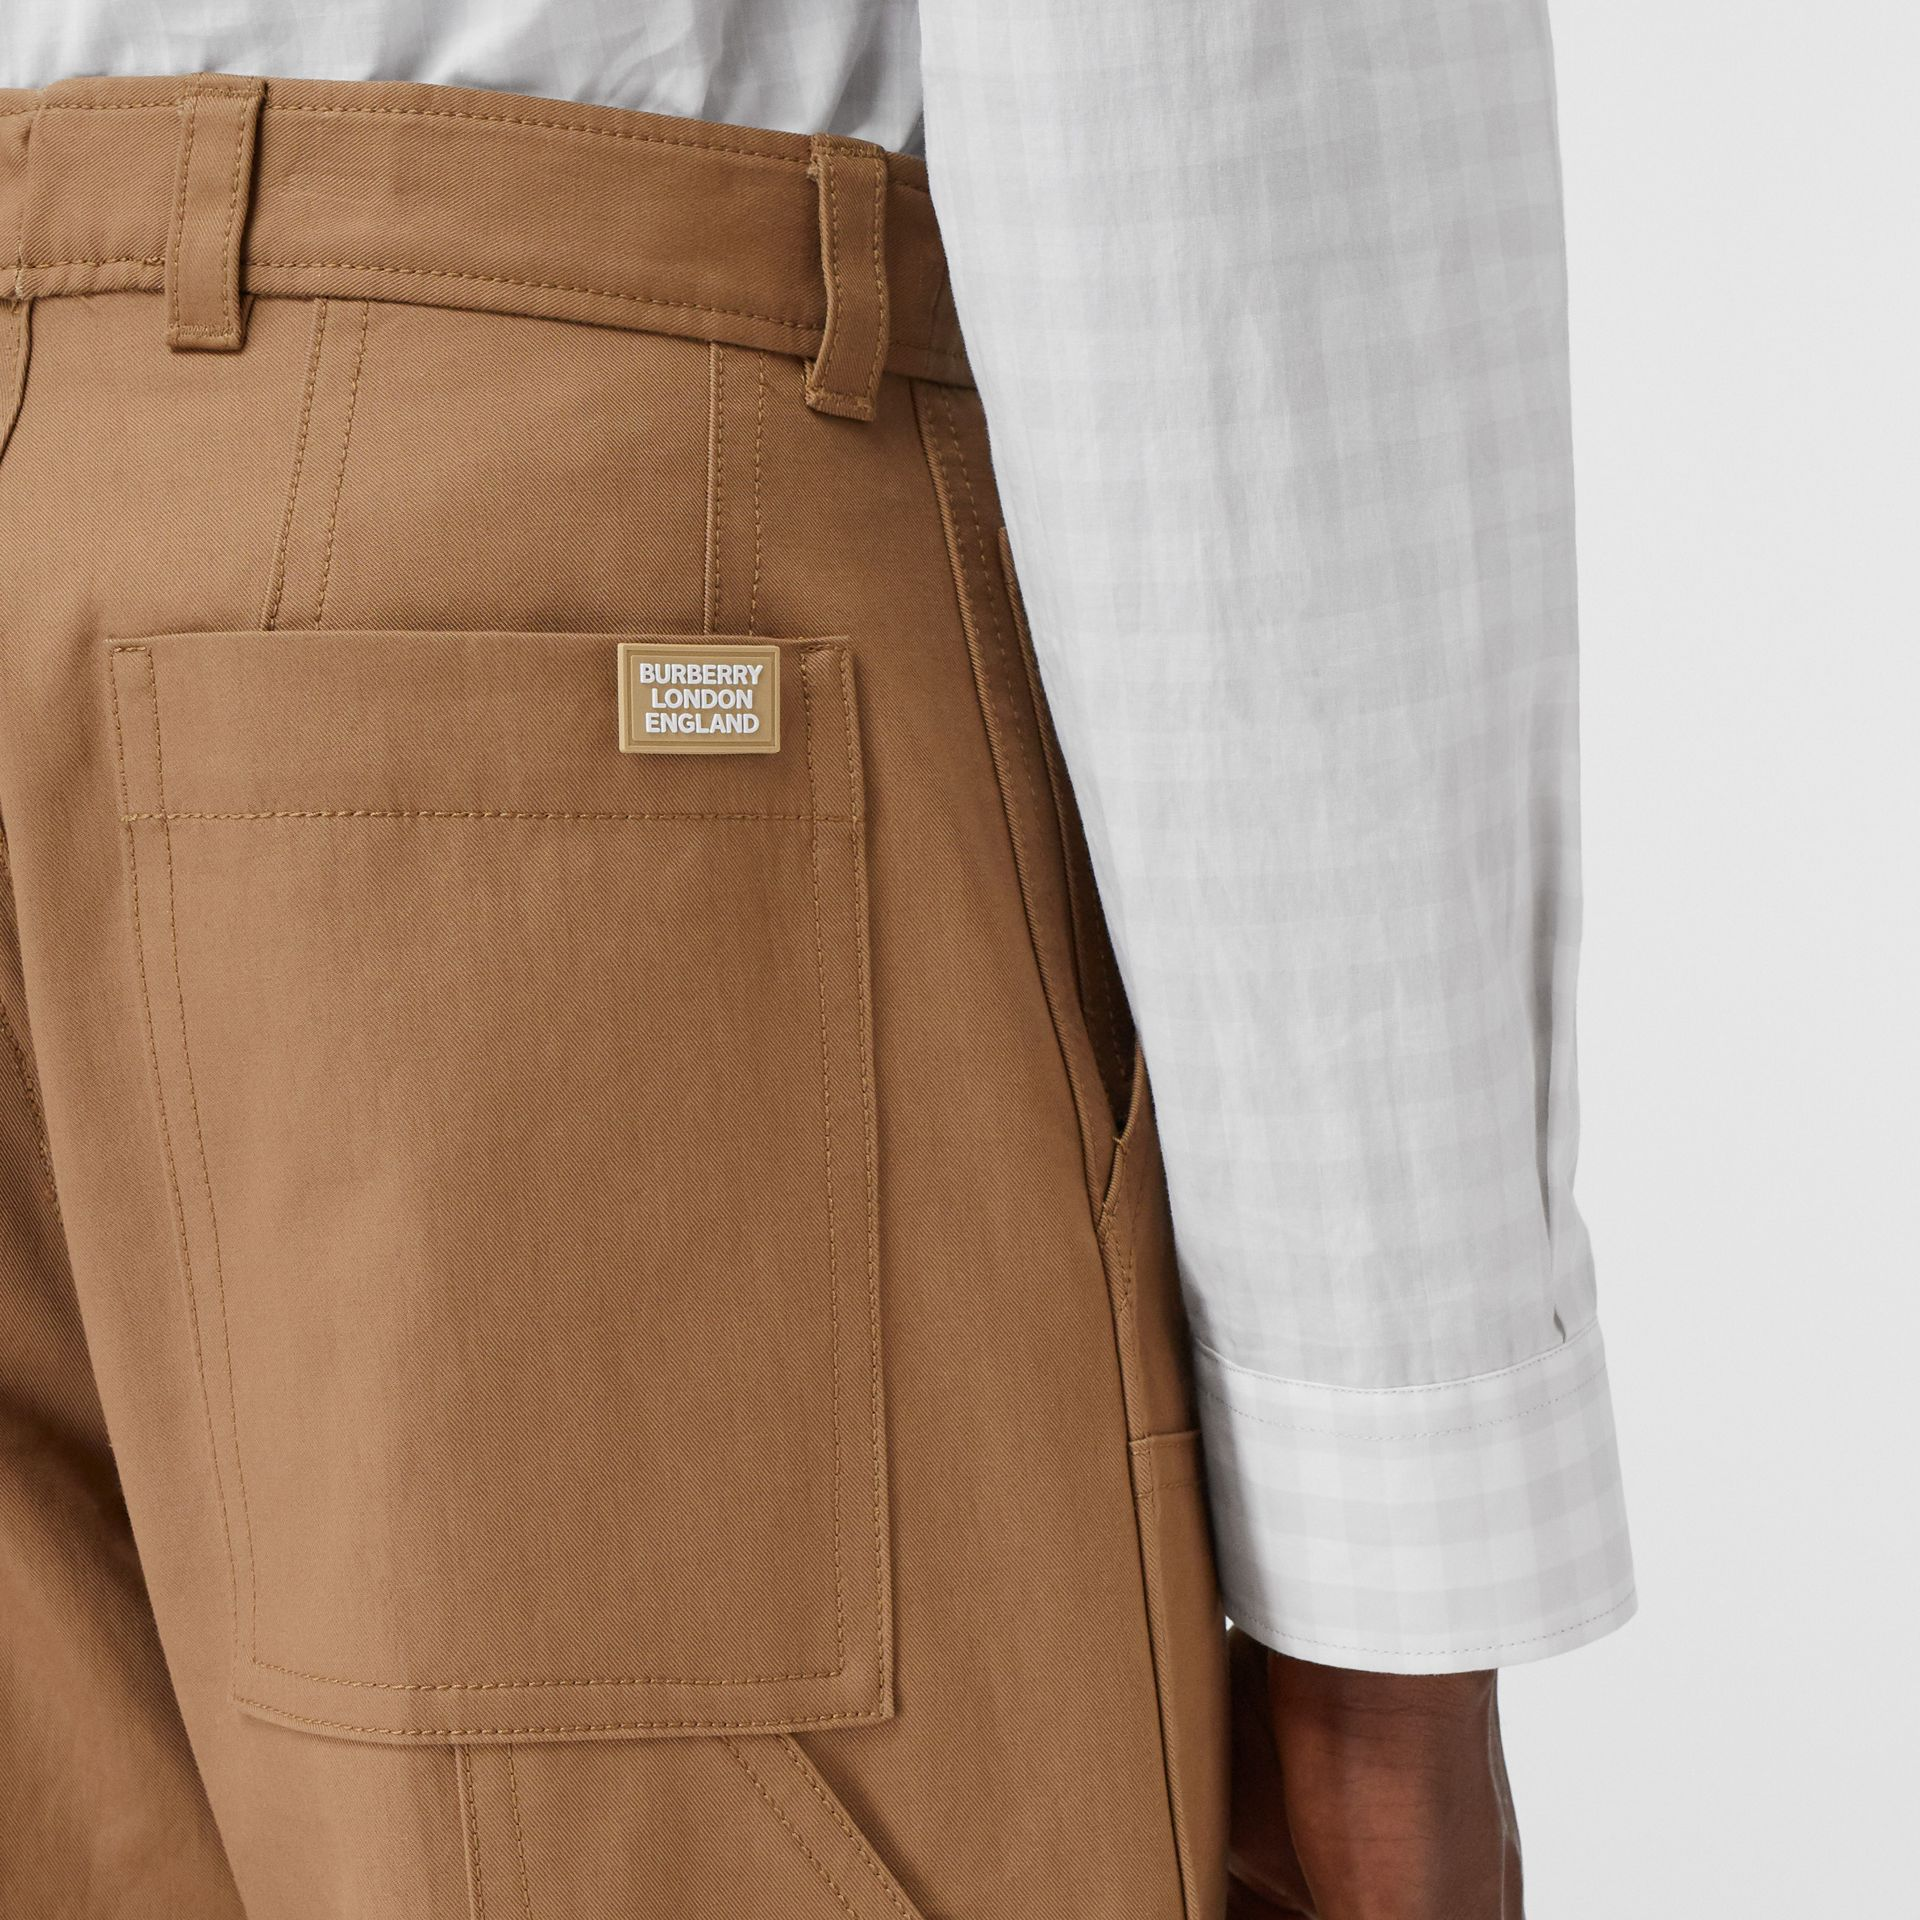 Cotton Twill Tailored Trousers in Warm Walnut | Burberry - gallery image 1